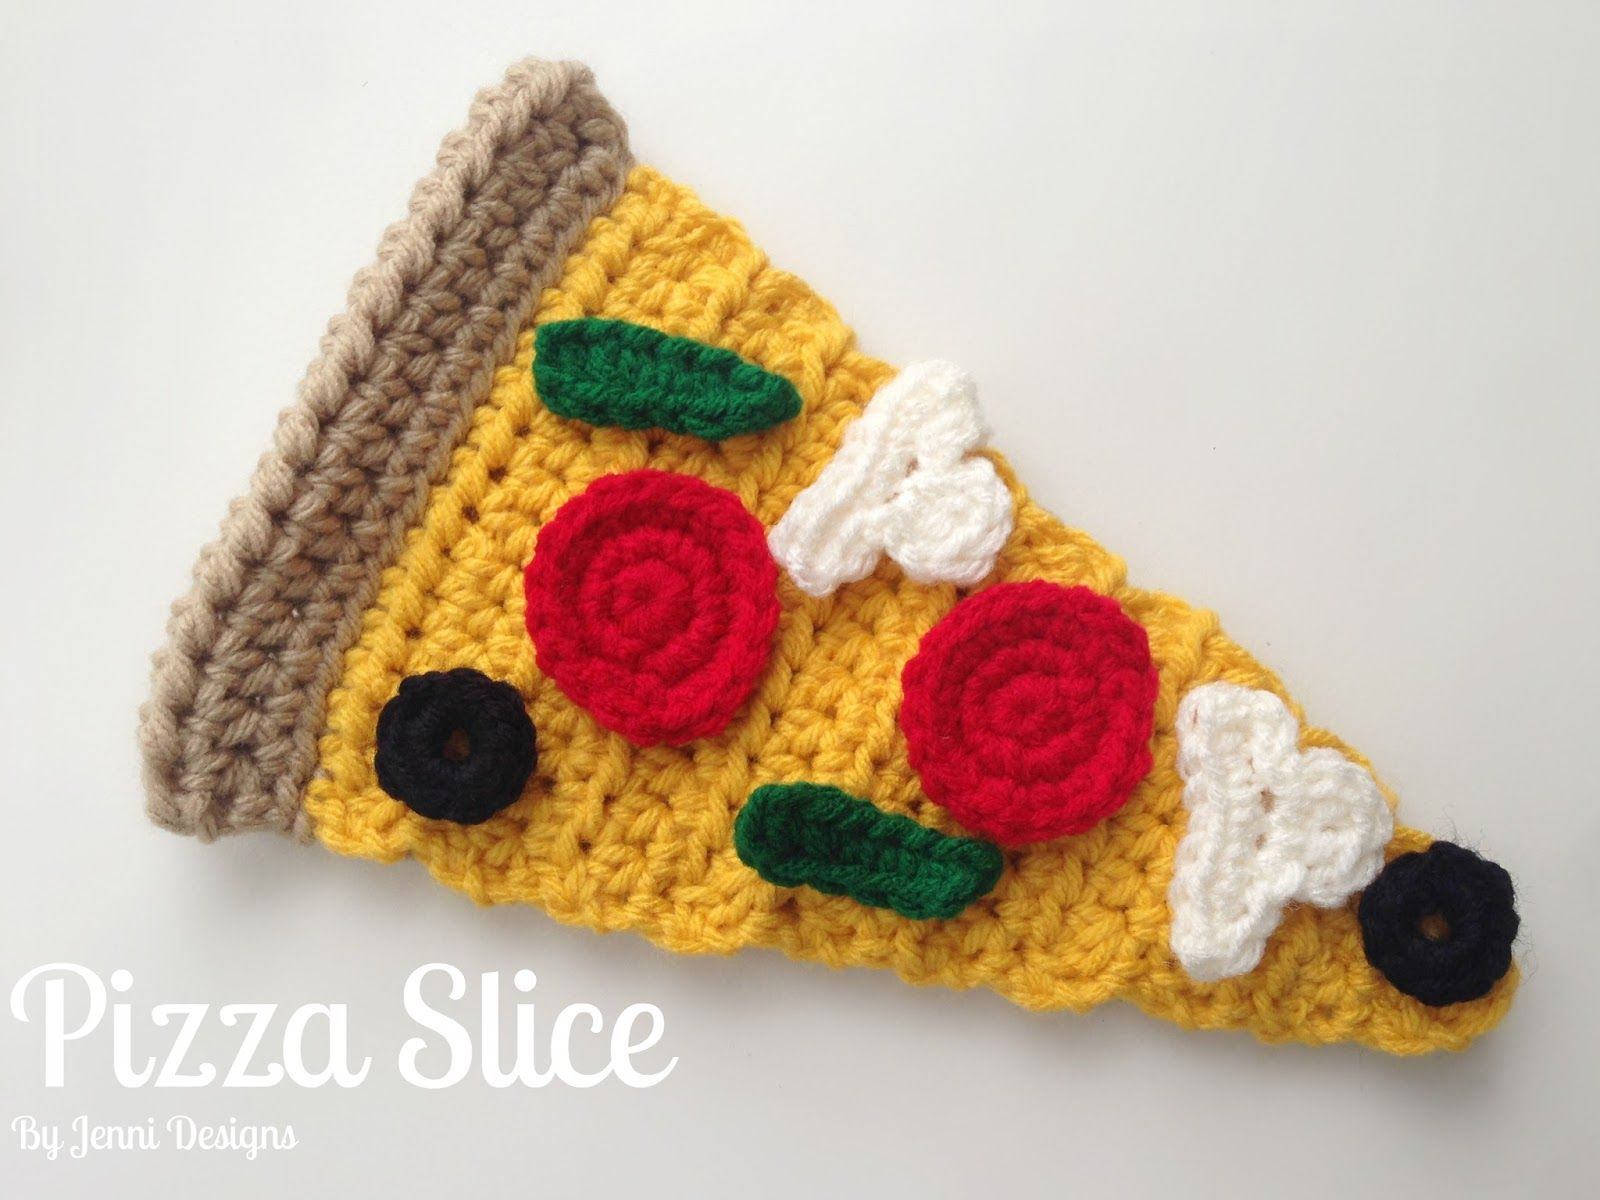 Free Crochet Toy Pattern: Pizza Slice & Toppings | Food | Pinterest ...